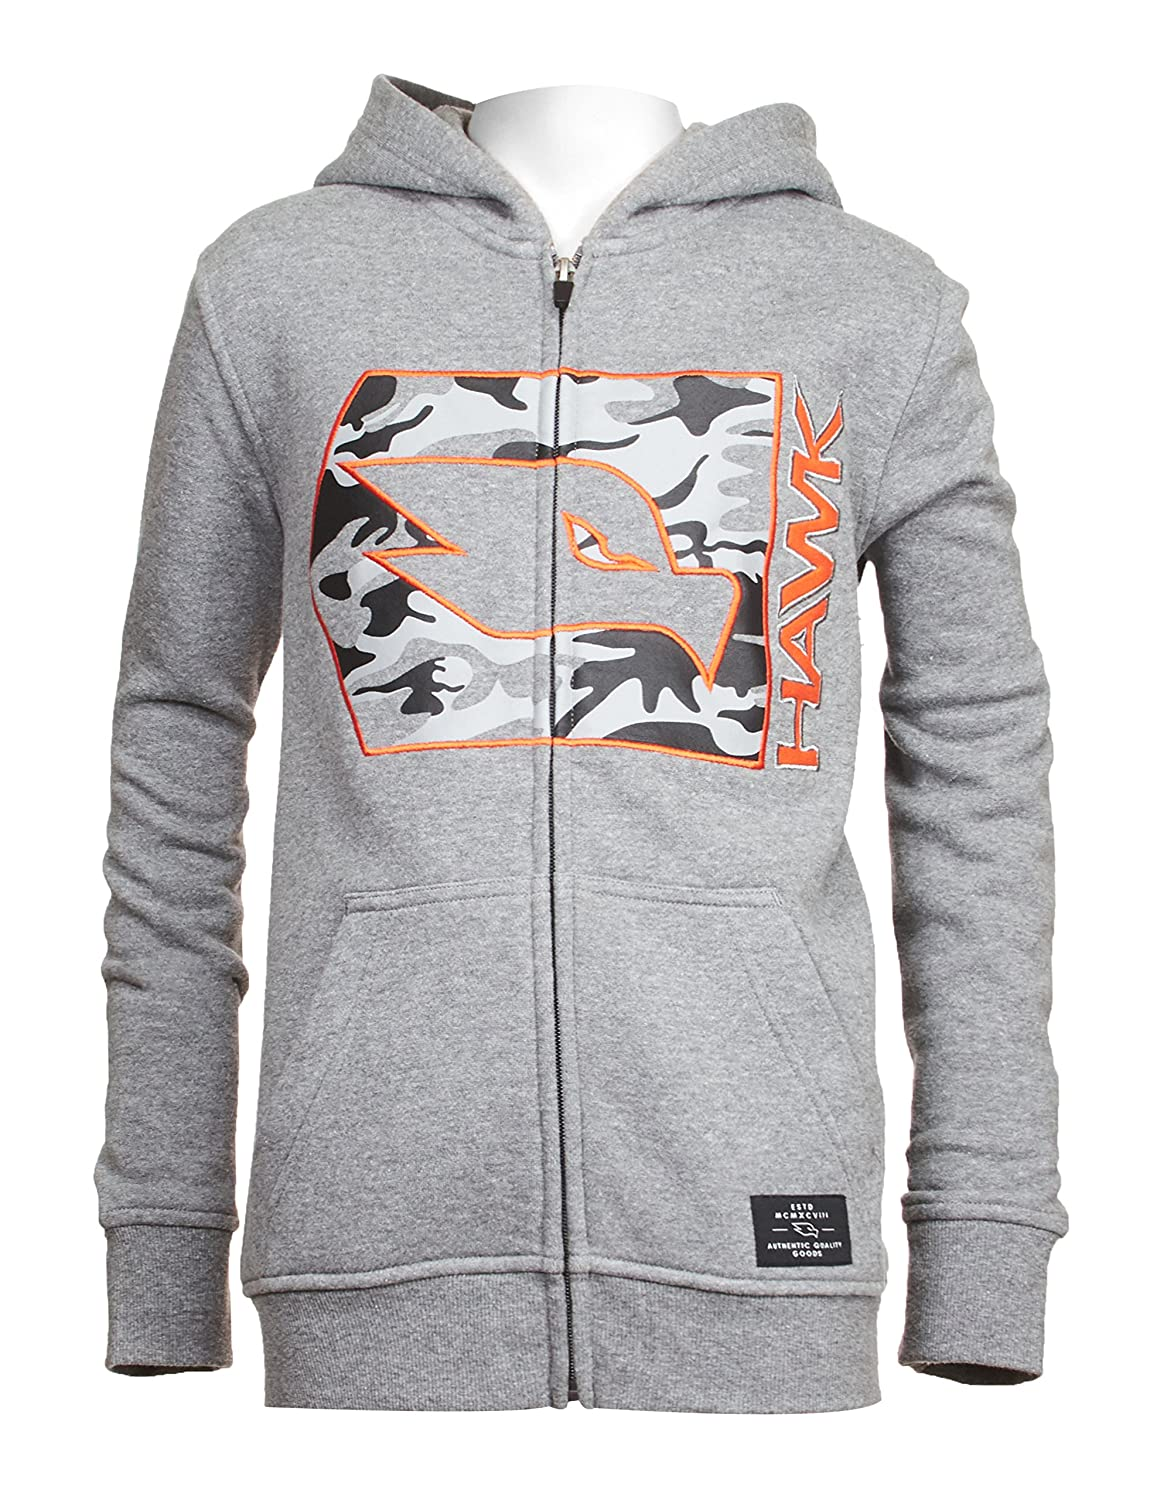 Tony Hawk Kids Boys Fleece Front Zip Hoodie with Camouflage and Embroidery School Clothes (See More Colors and Sizes)